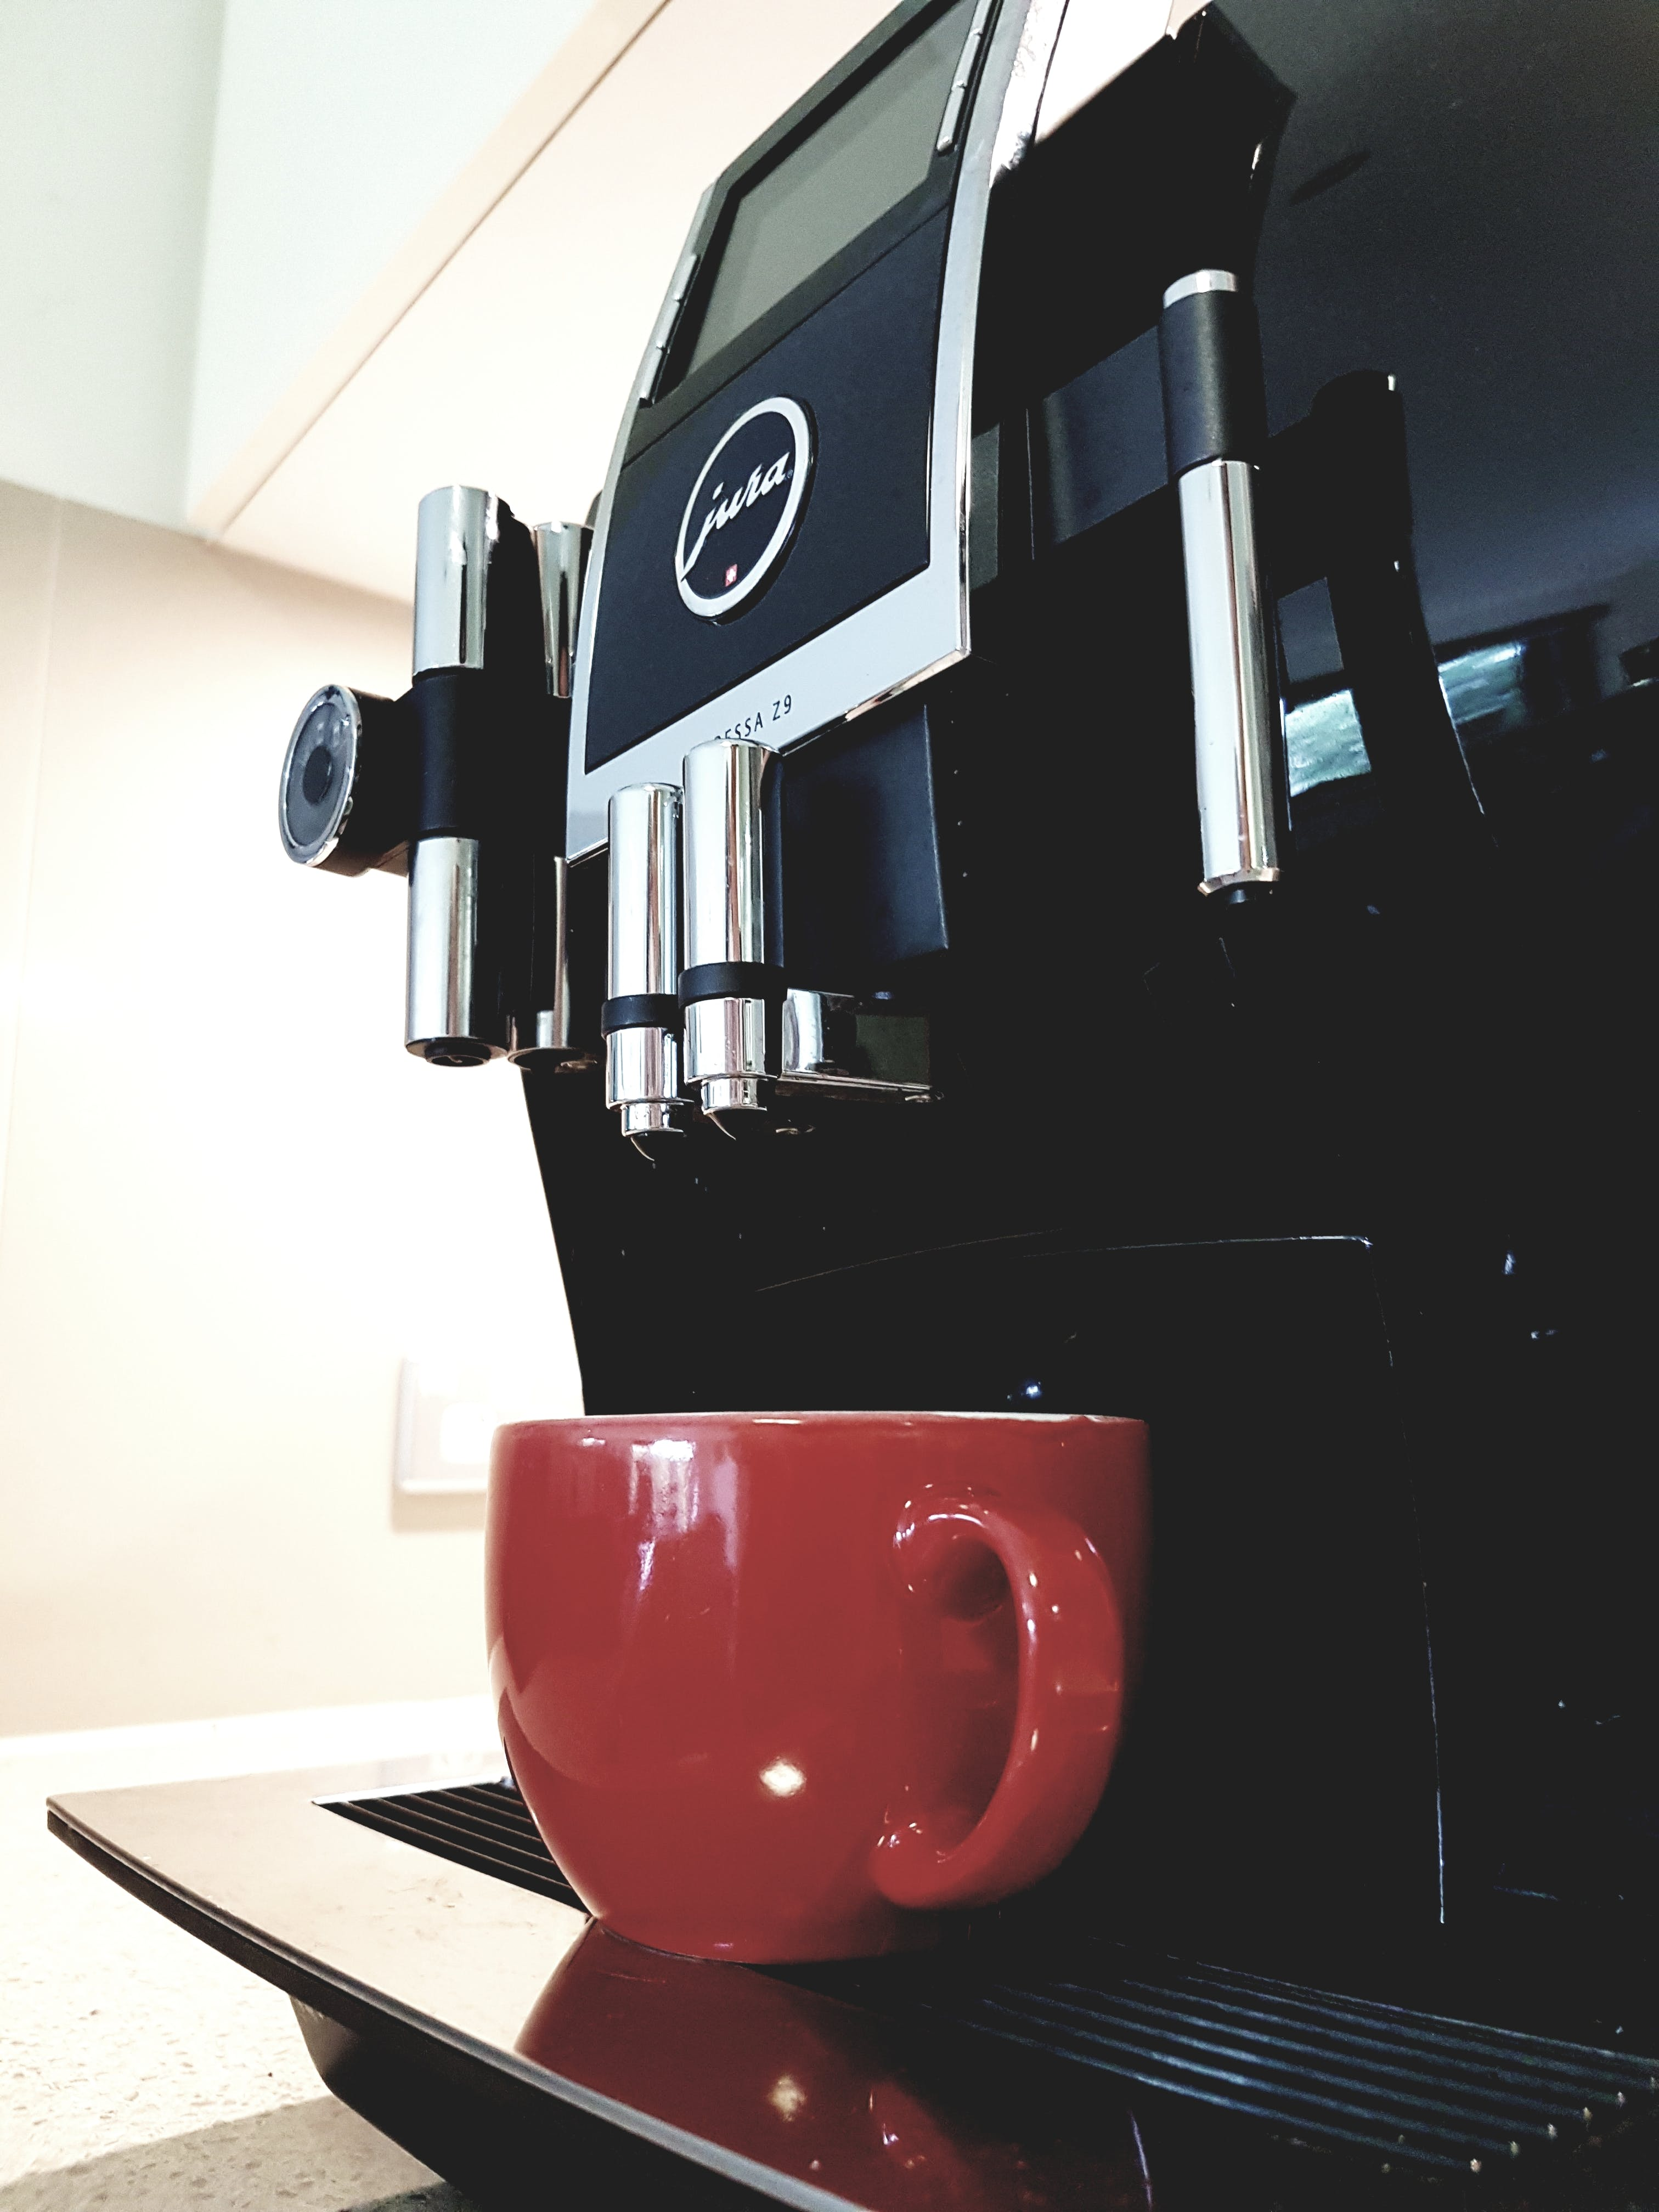 Black Coffeemaker With Red Ceramic Teacup